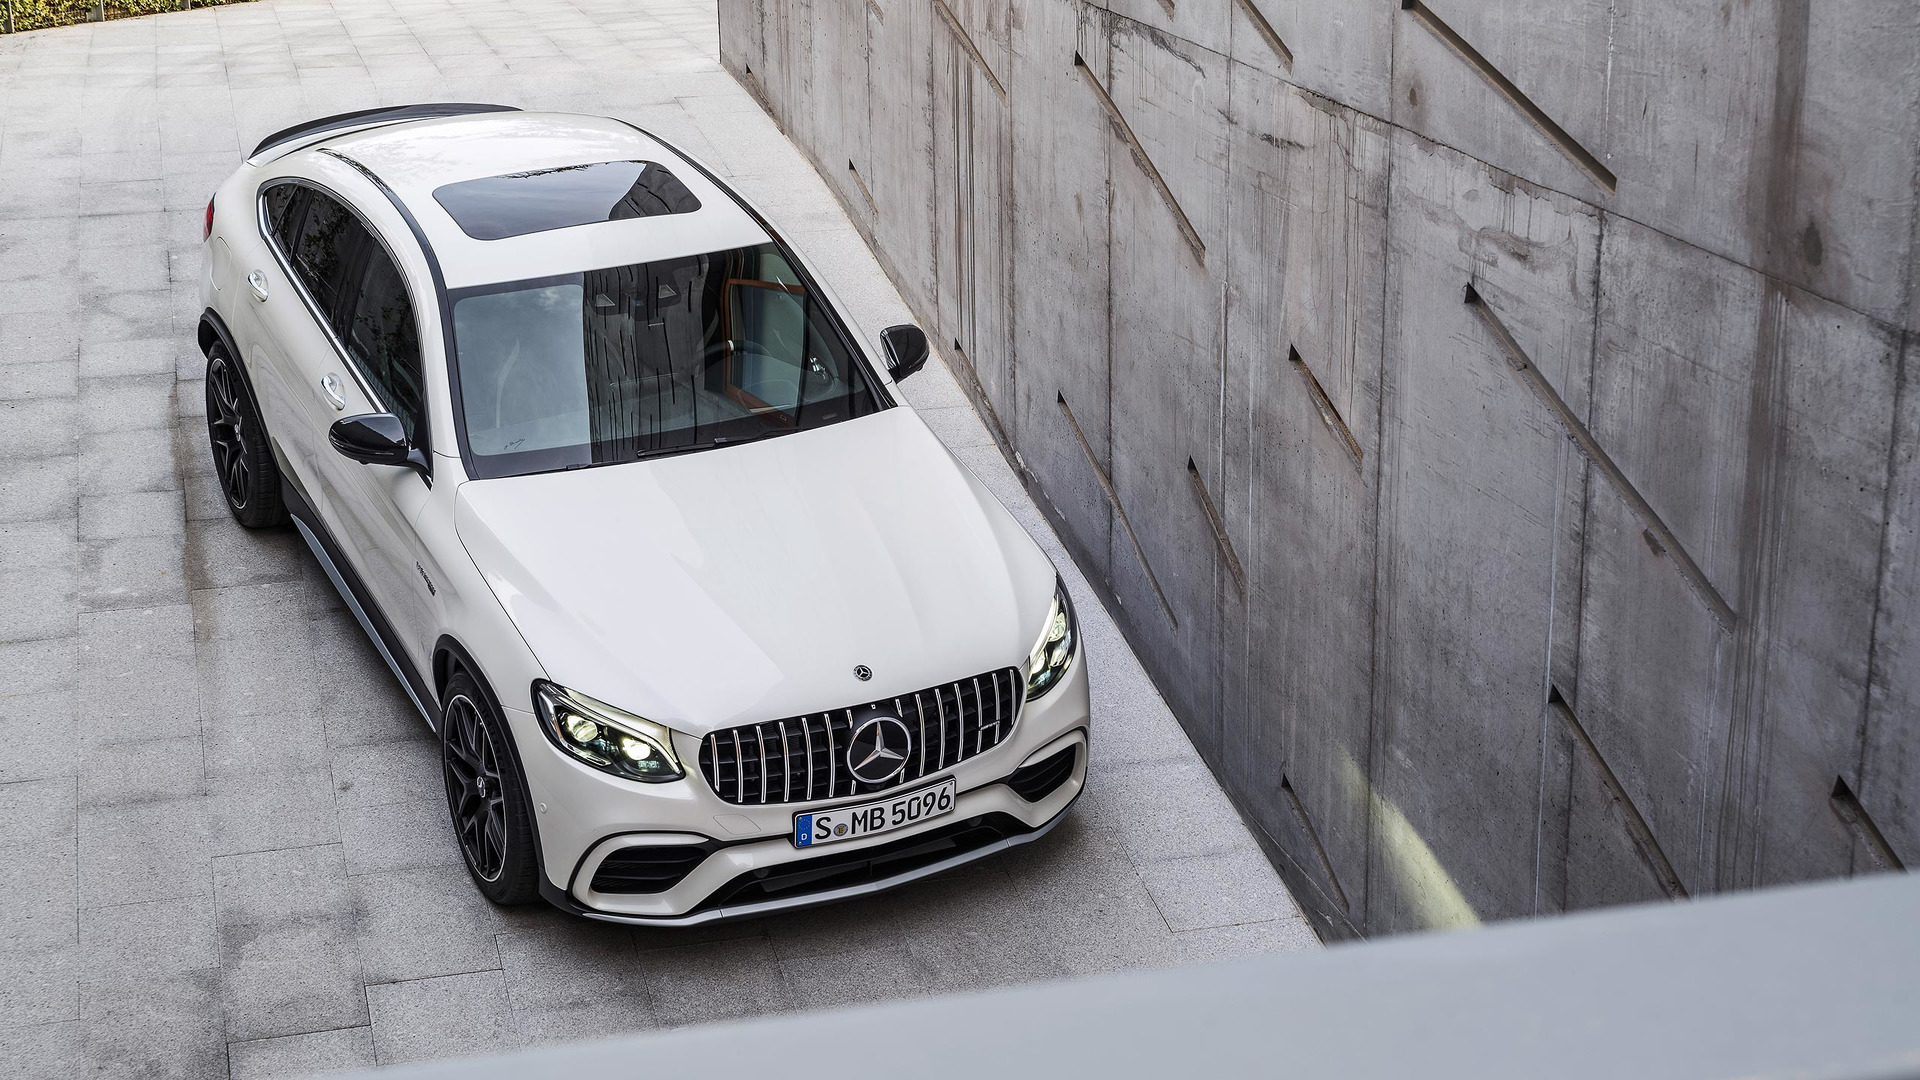 https://icdn-0.motor1.com/images/mgl/nB16y/s1/mercedes-amg-glc63-s-coupe.jpg